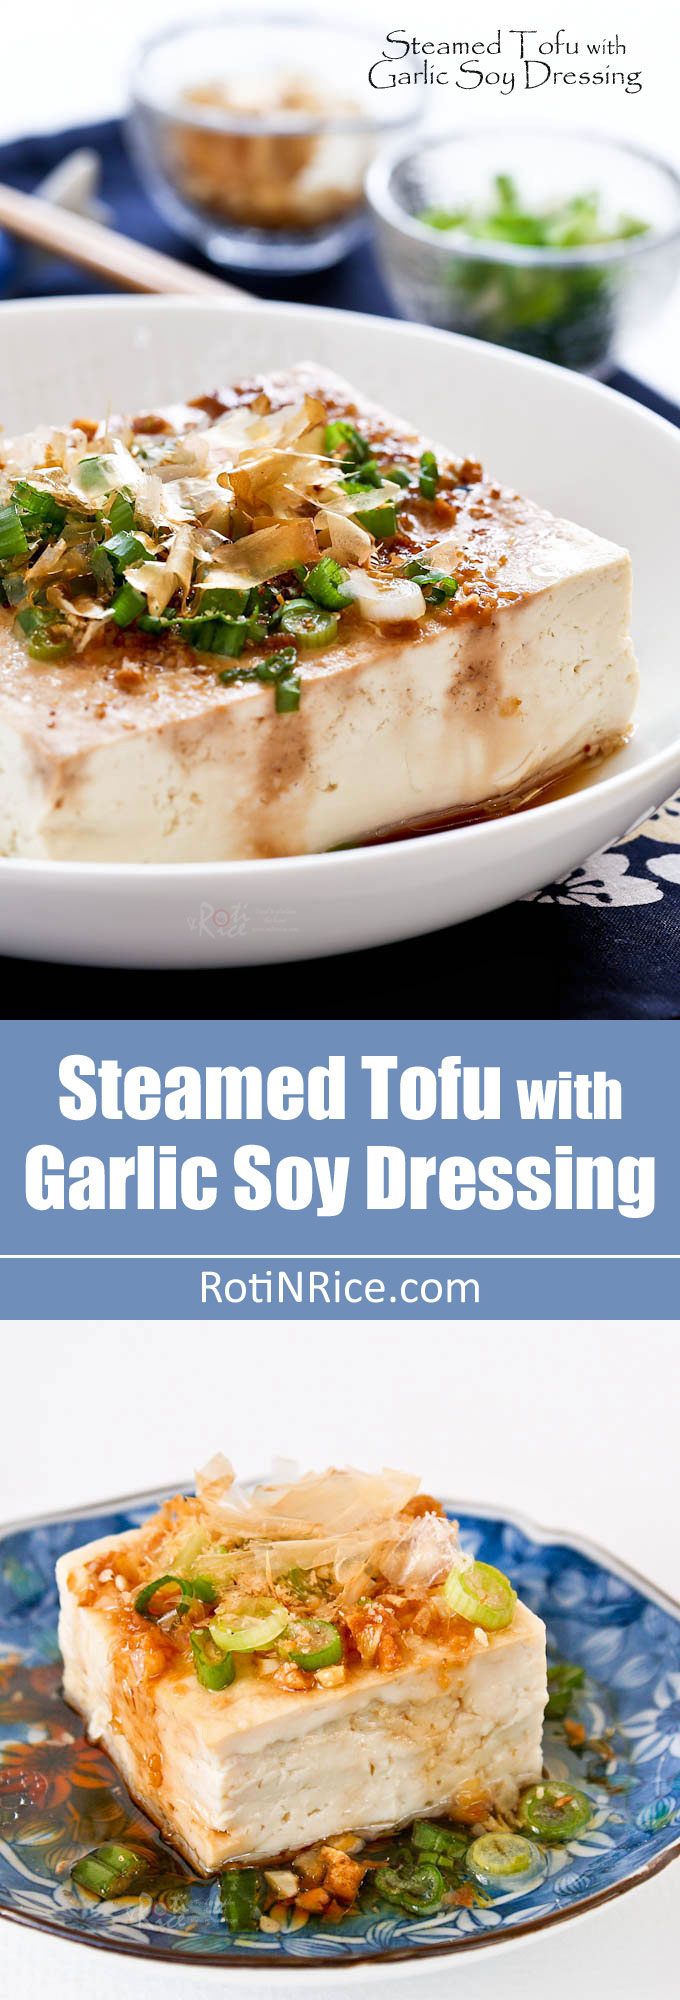 Steamed Tofu with Garlic Soy Dressing - a healthy delicious side dish to go with rice. Can be prepared in under 15 minutes in the microwave. Video instructions. | RotiNRice.com